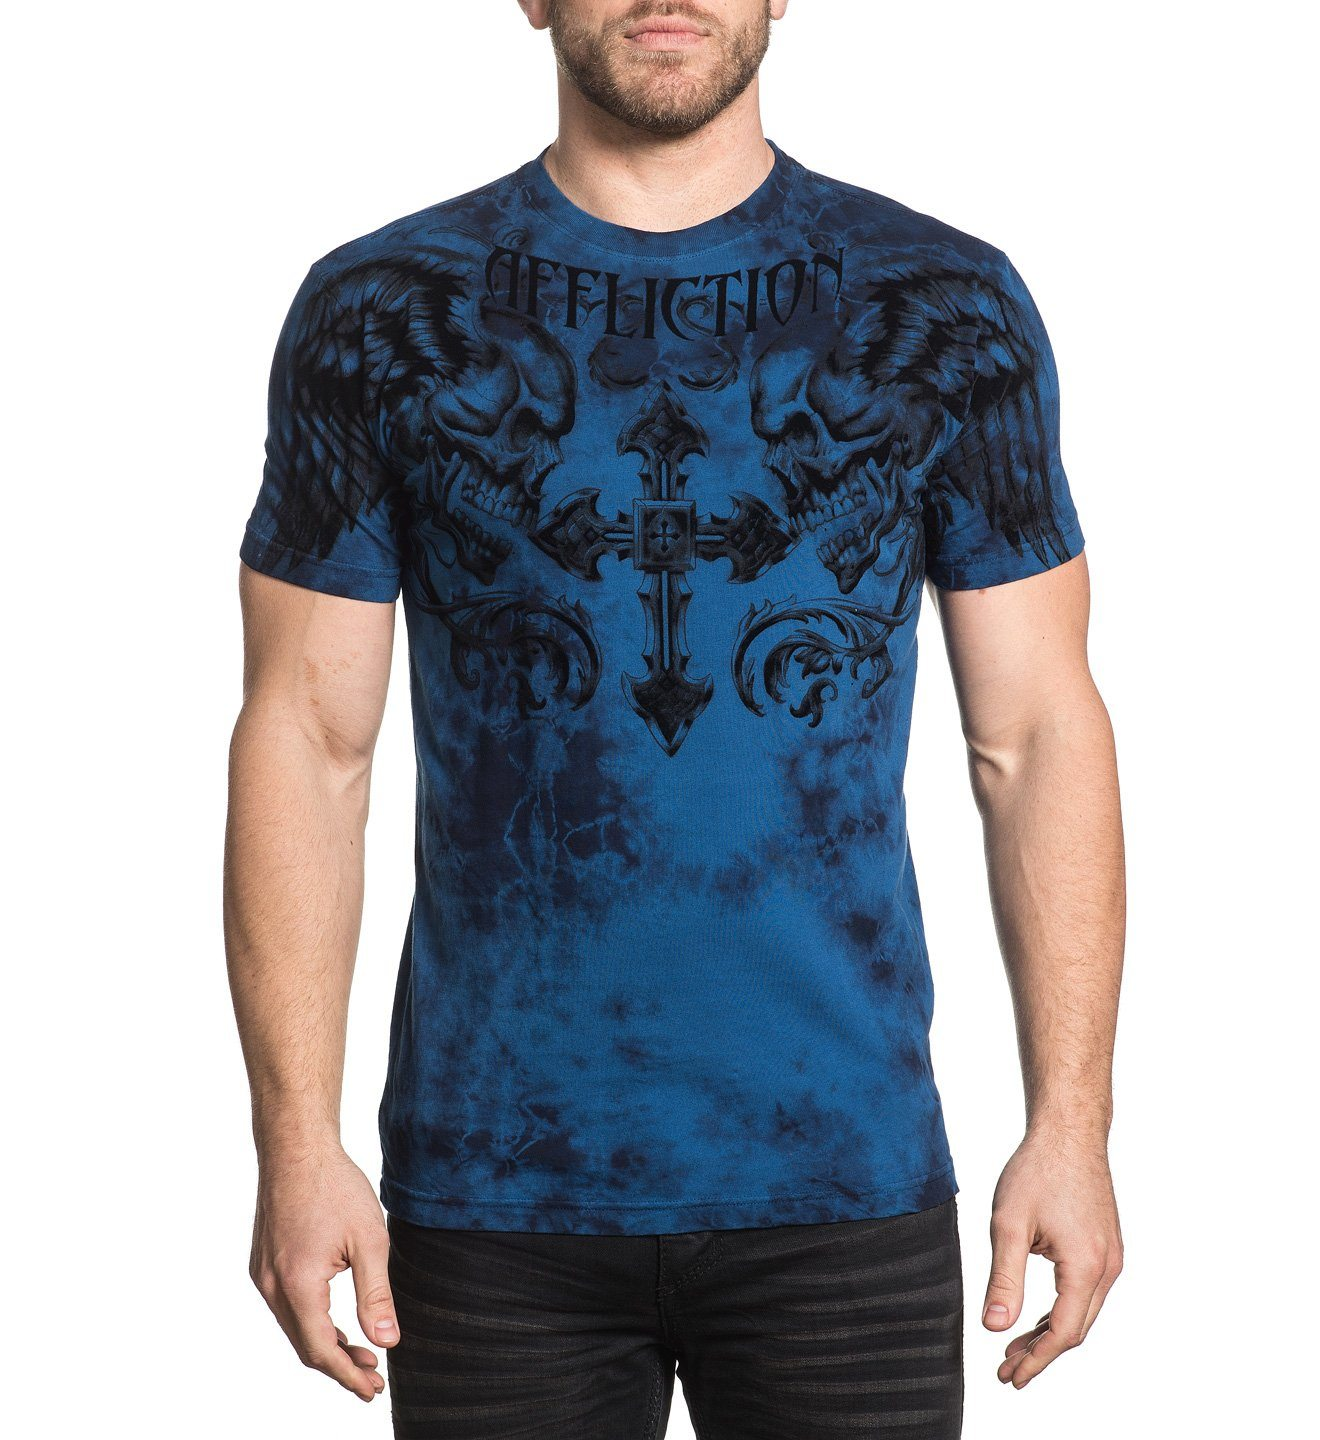 Fragmented - Mens Short Sleeve Tees - Affliction Clothing